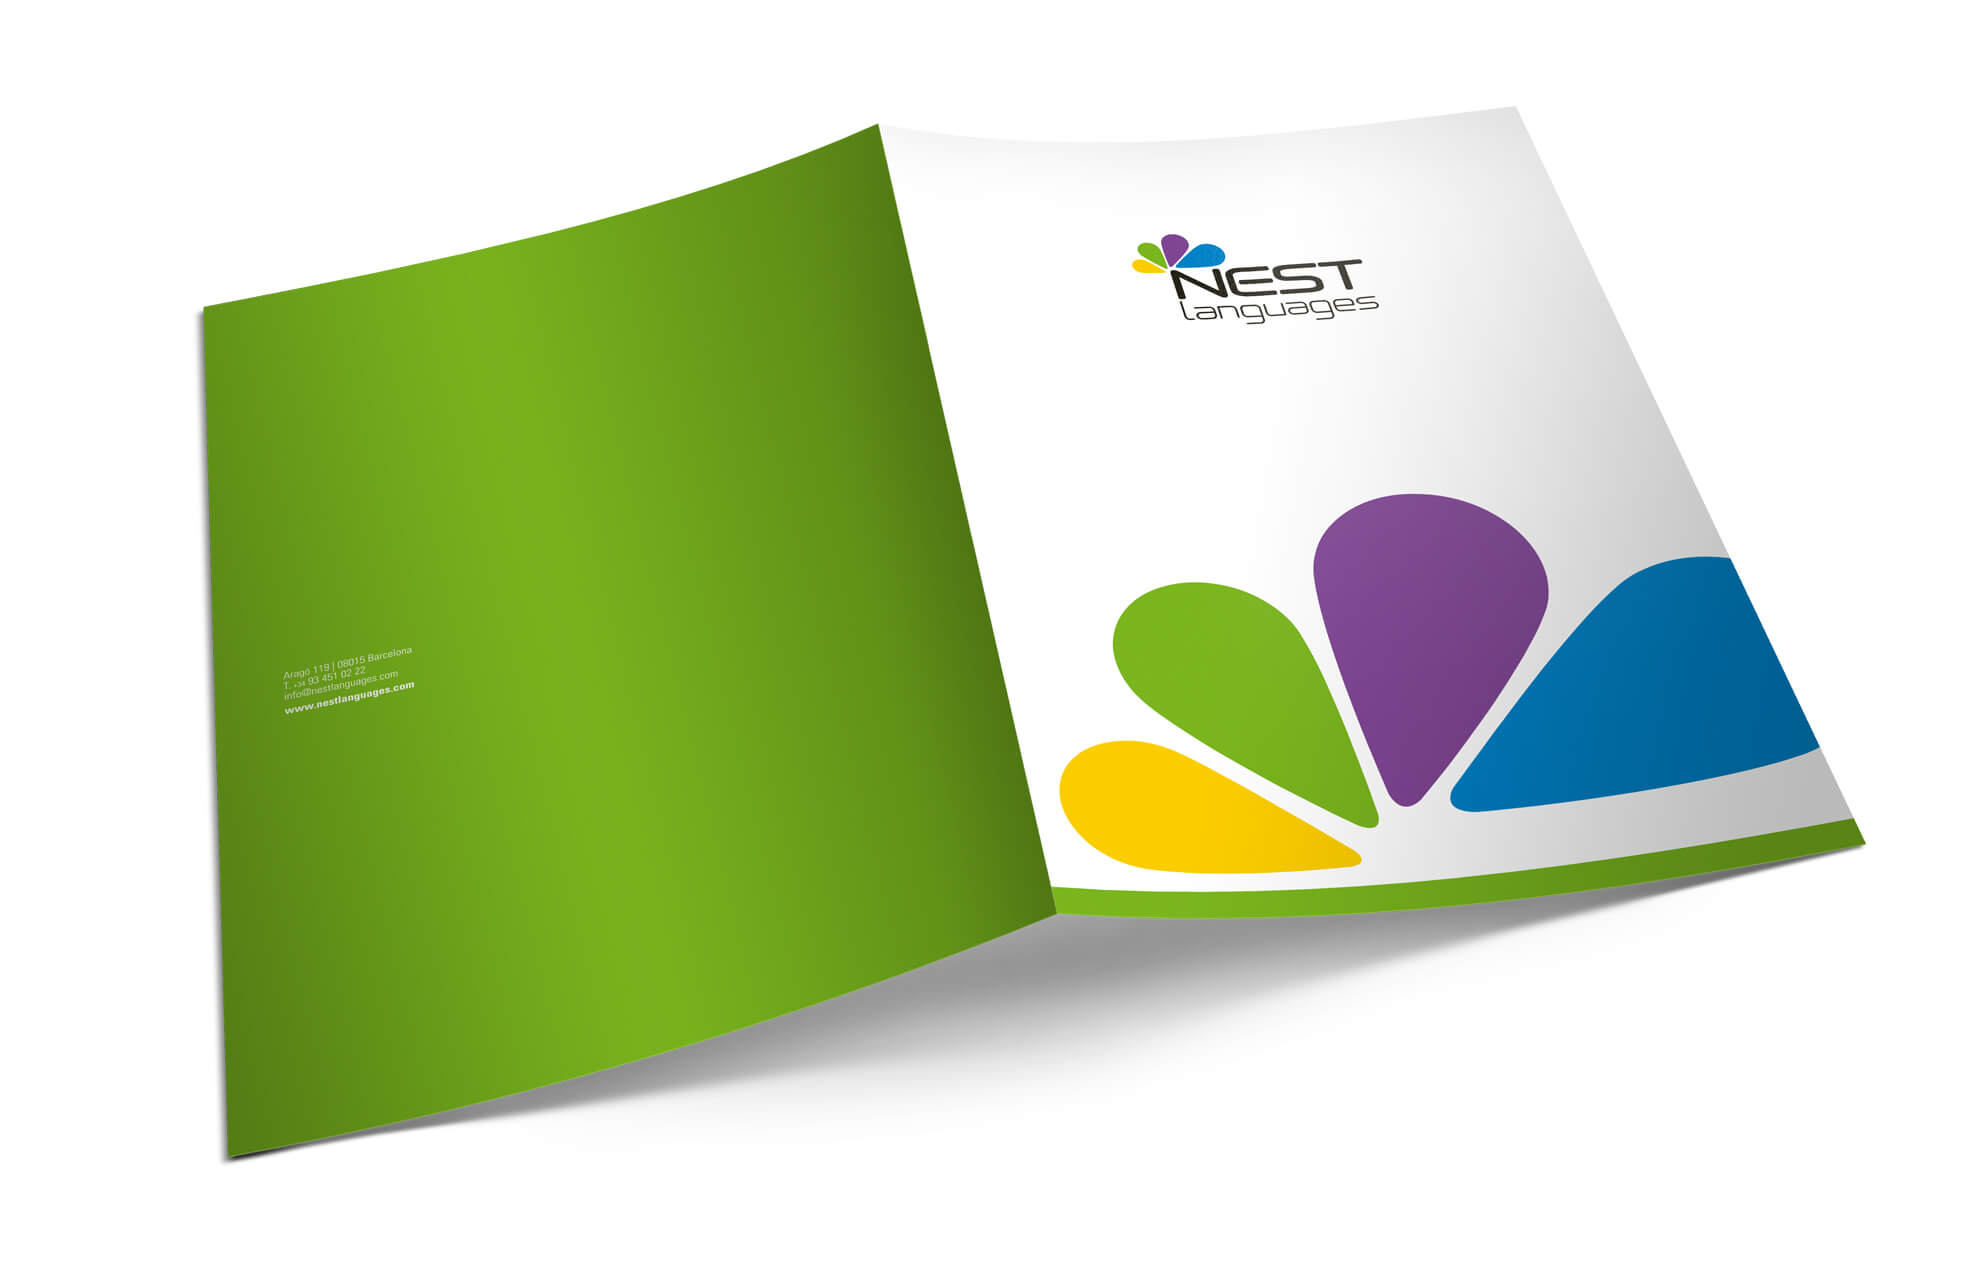 Corporate folder branding barcelona1 - Branding. Creación de marca. Nest